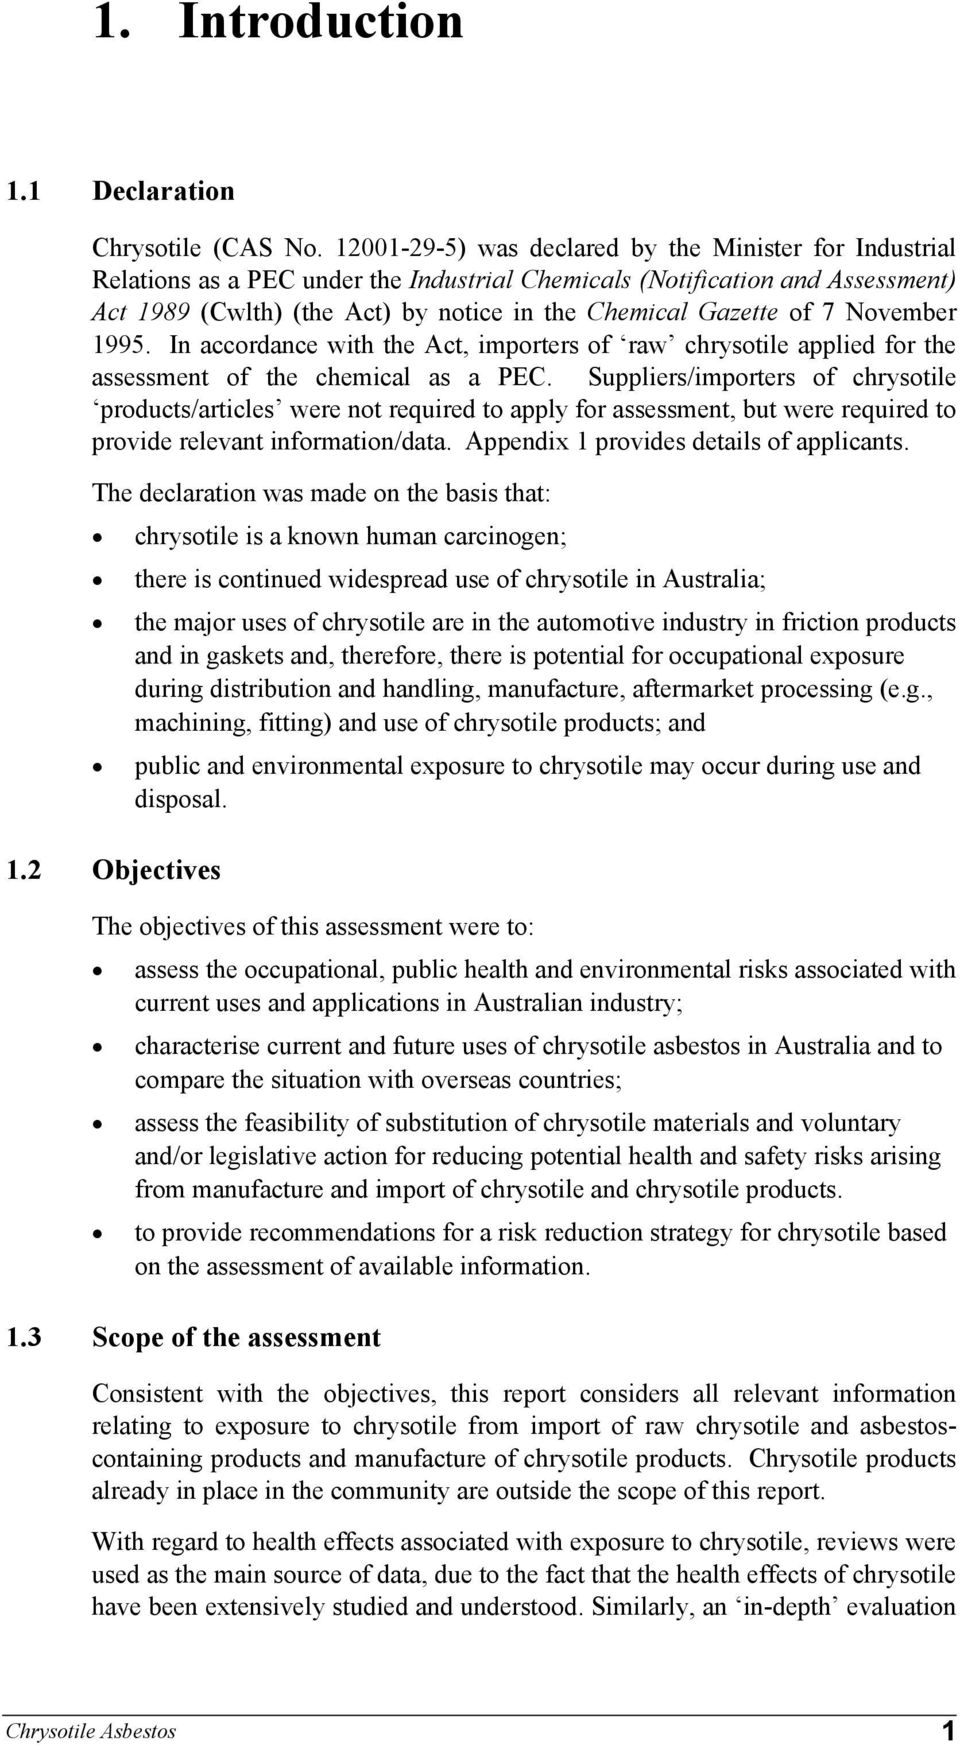 7 November 1995. In accordance with the Act, importers of raw chrysotile applied for the assessment of the chemical as a PEC.